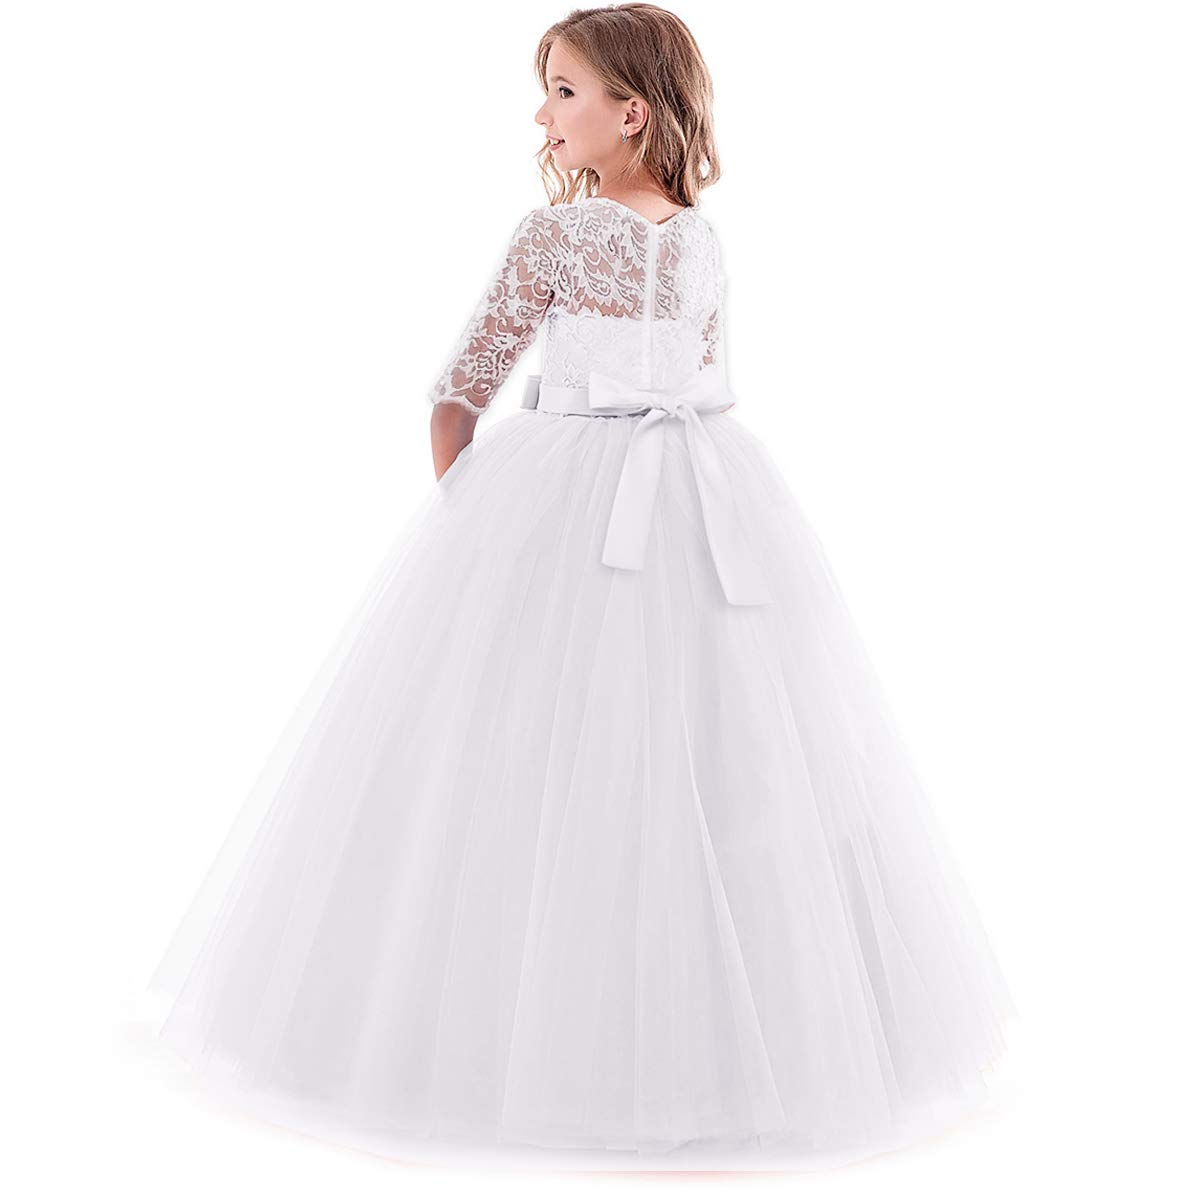 OBEEII Girls Party Princess Dress Half Sleeve Floral Lace Ball Gown for Pageant Ceremony Wedding Bridesmaid Communion Birthday Cocktail Evening Prom for Kids 2-14 Years